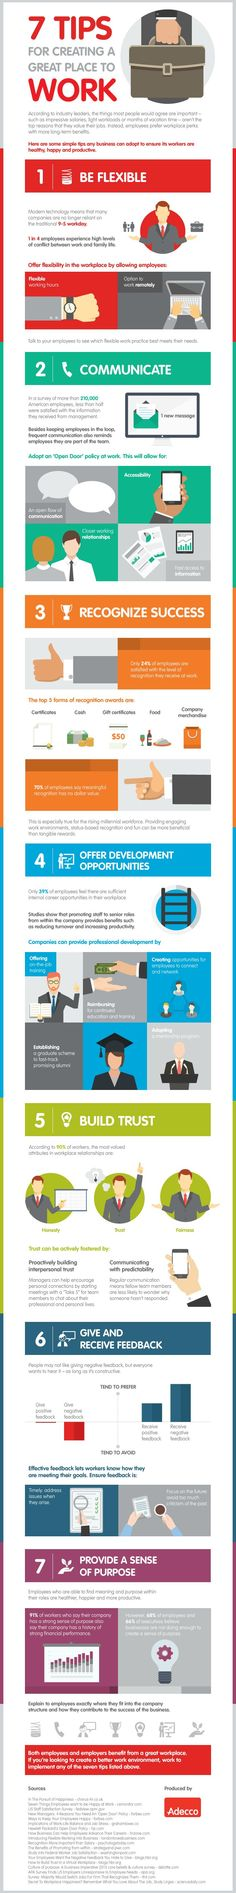 7 Tips for Creating a Great Place to Work #infographic #Business #Workplace